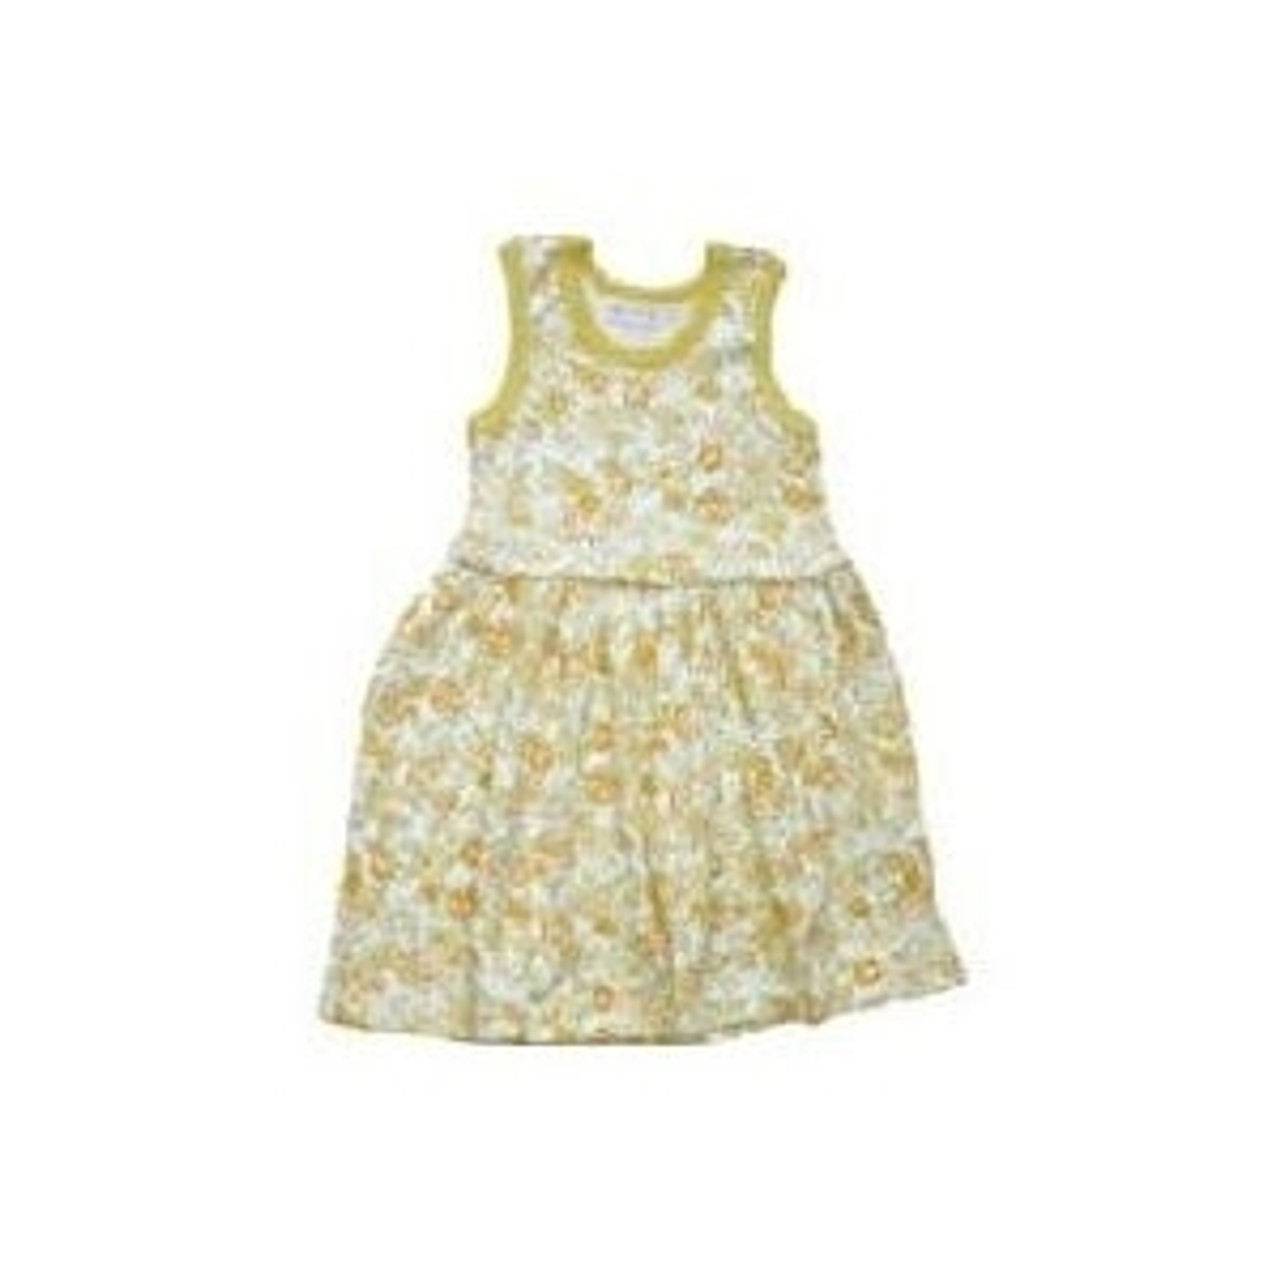 Under the Nile Organic Baby Clothes - Tropical Dress - 12 Months